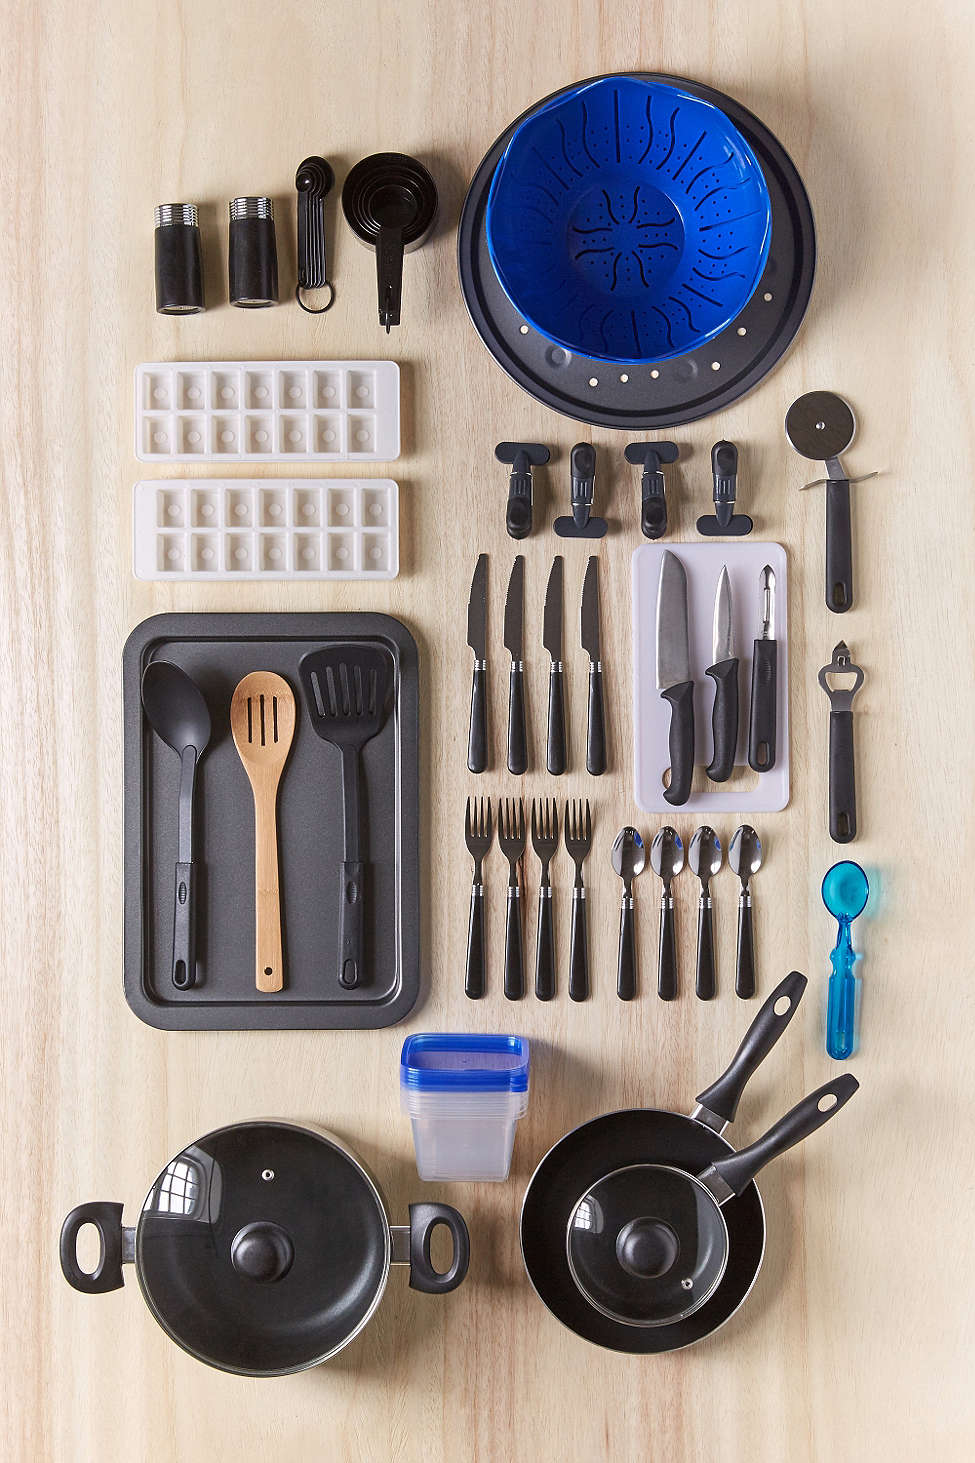 Kitchen set from Urban Outfitters